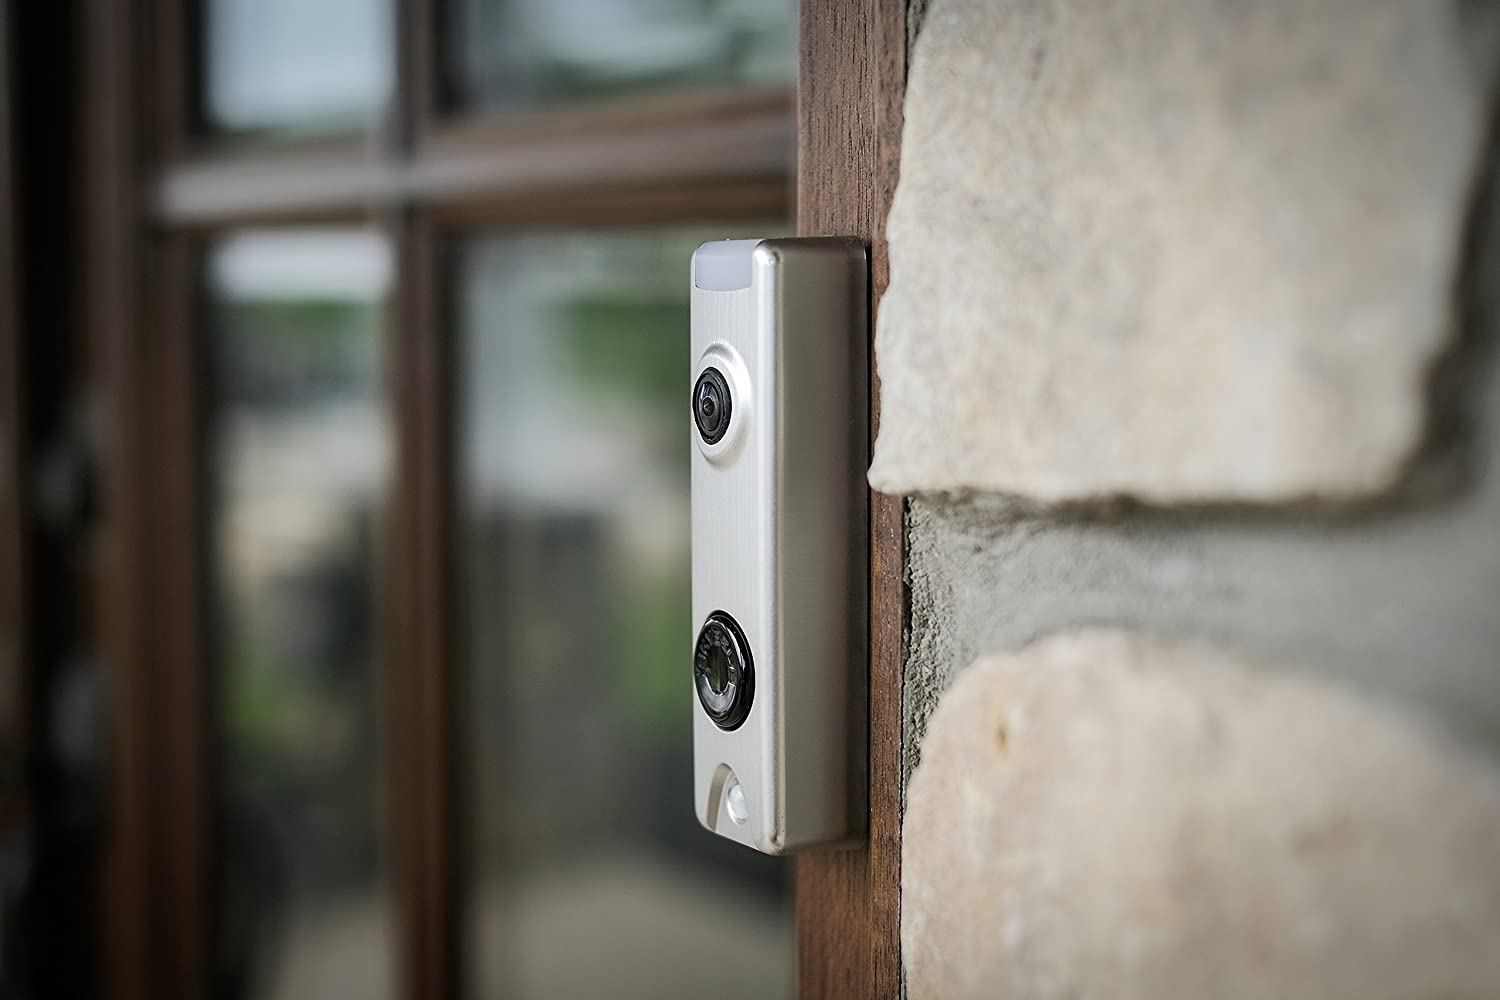 Best Cheap and Budget Video Doorbell Camera